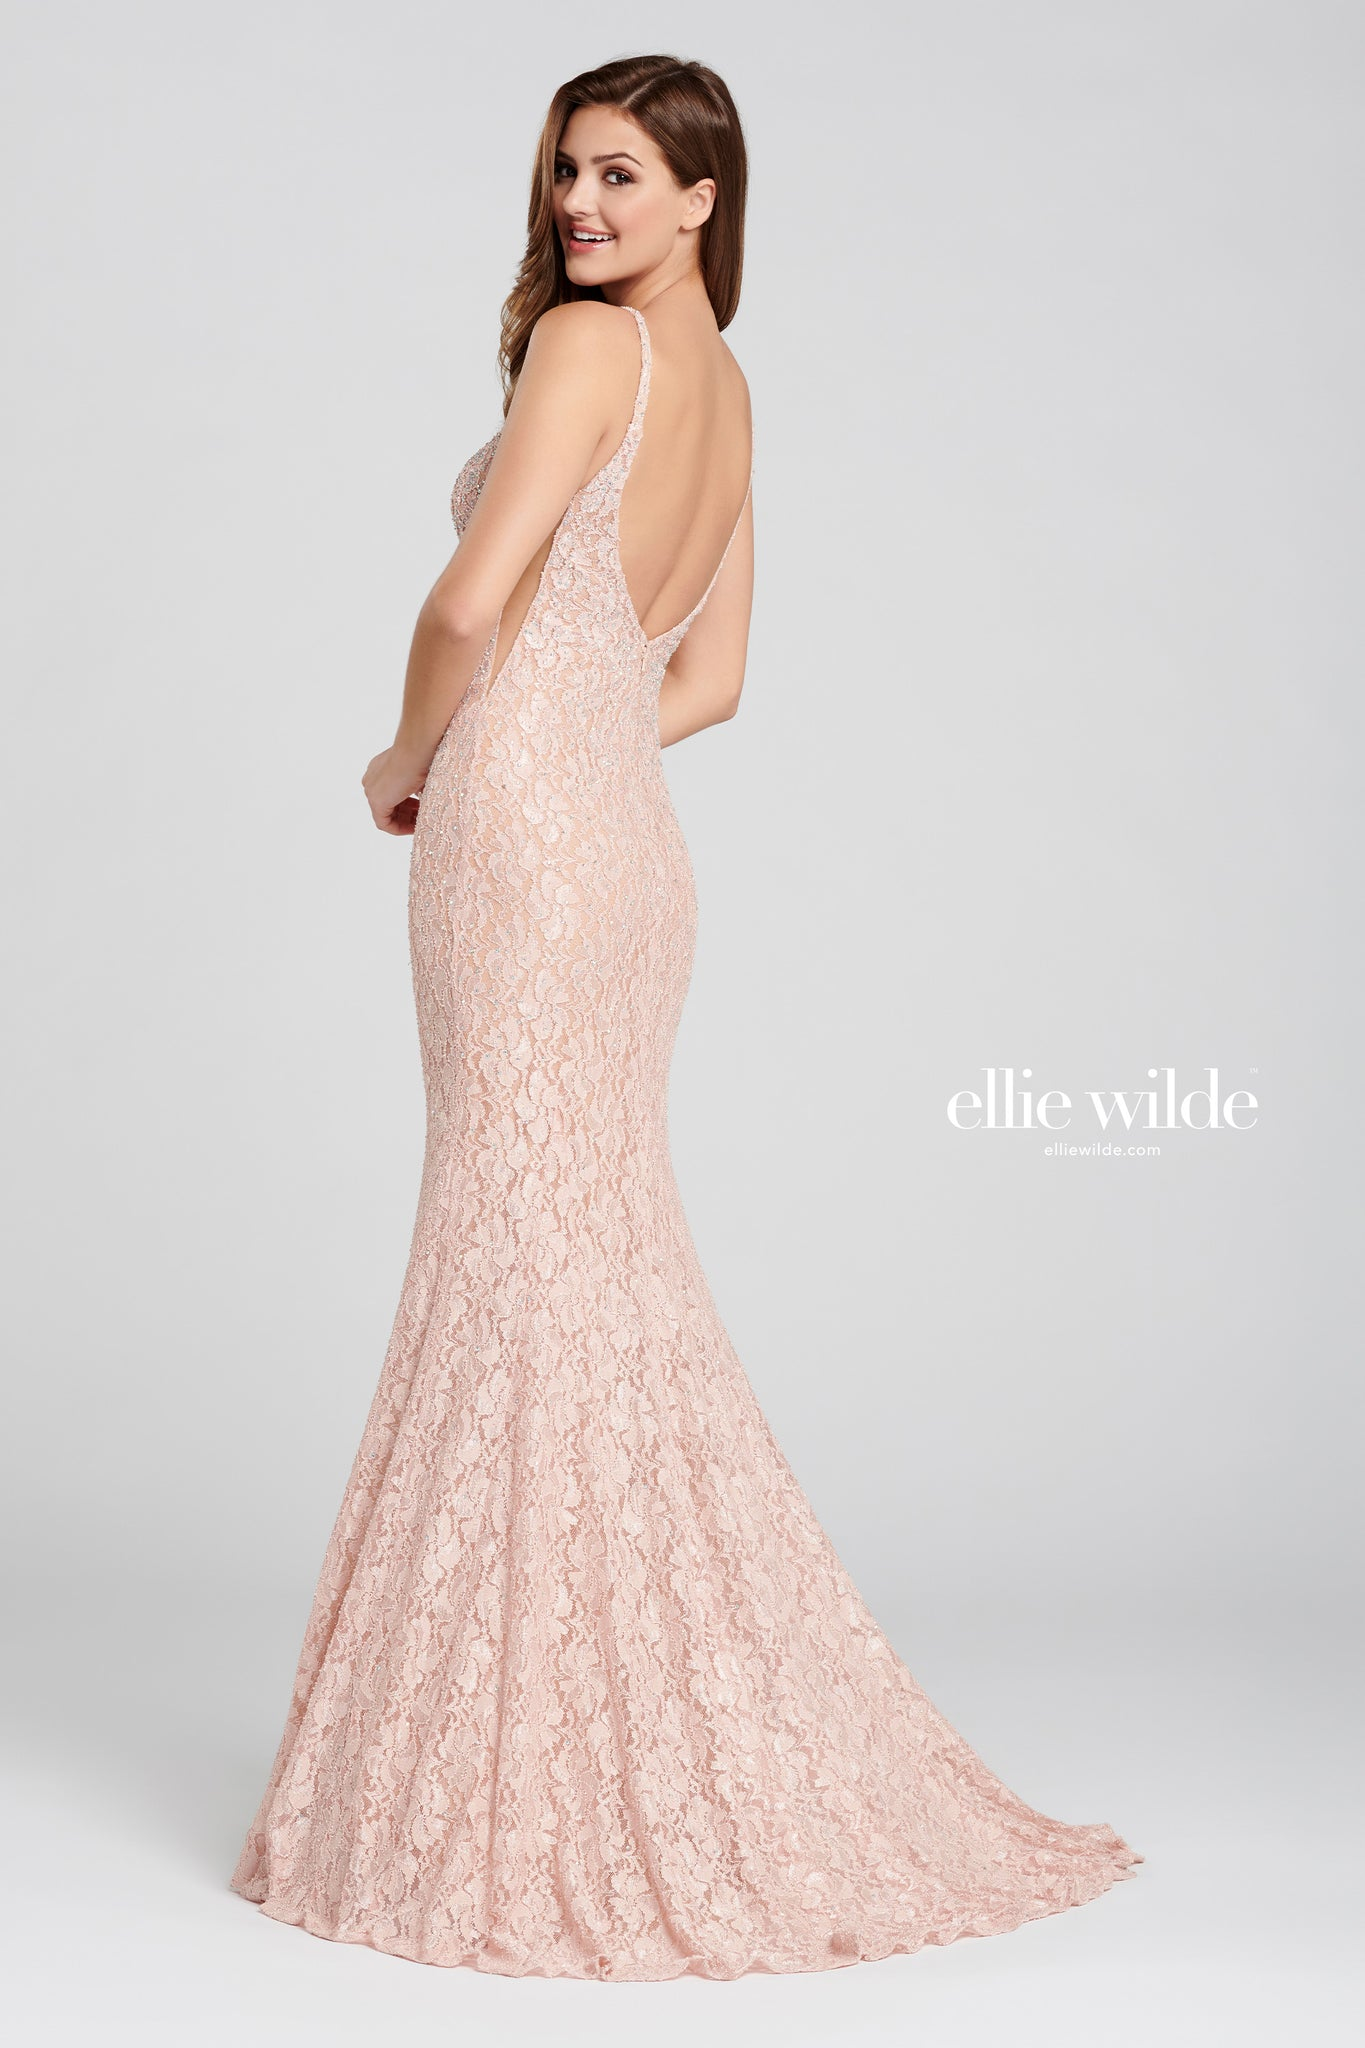 Ellie Wilde Pink Lace Evening Gown